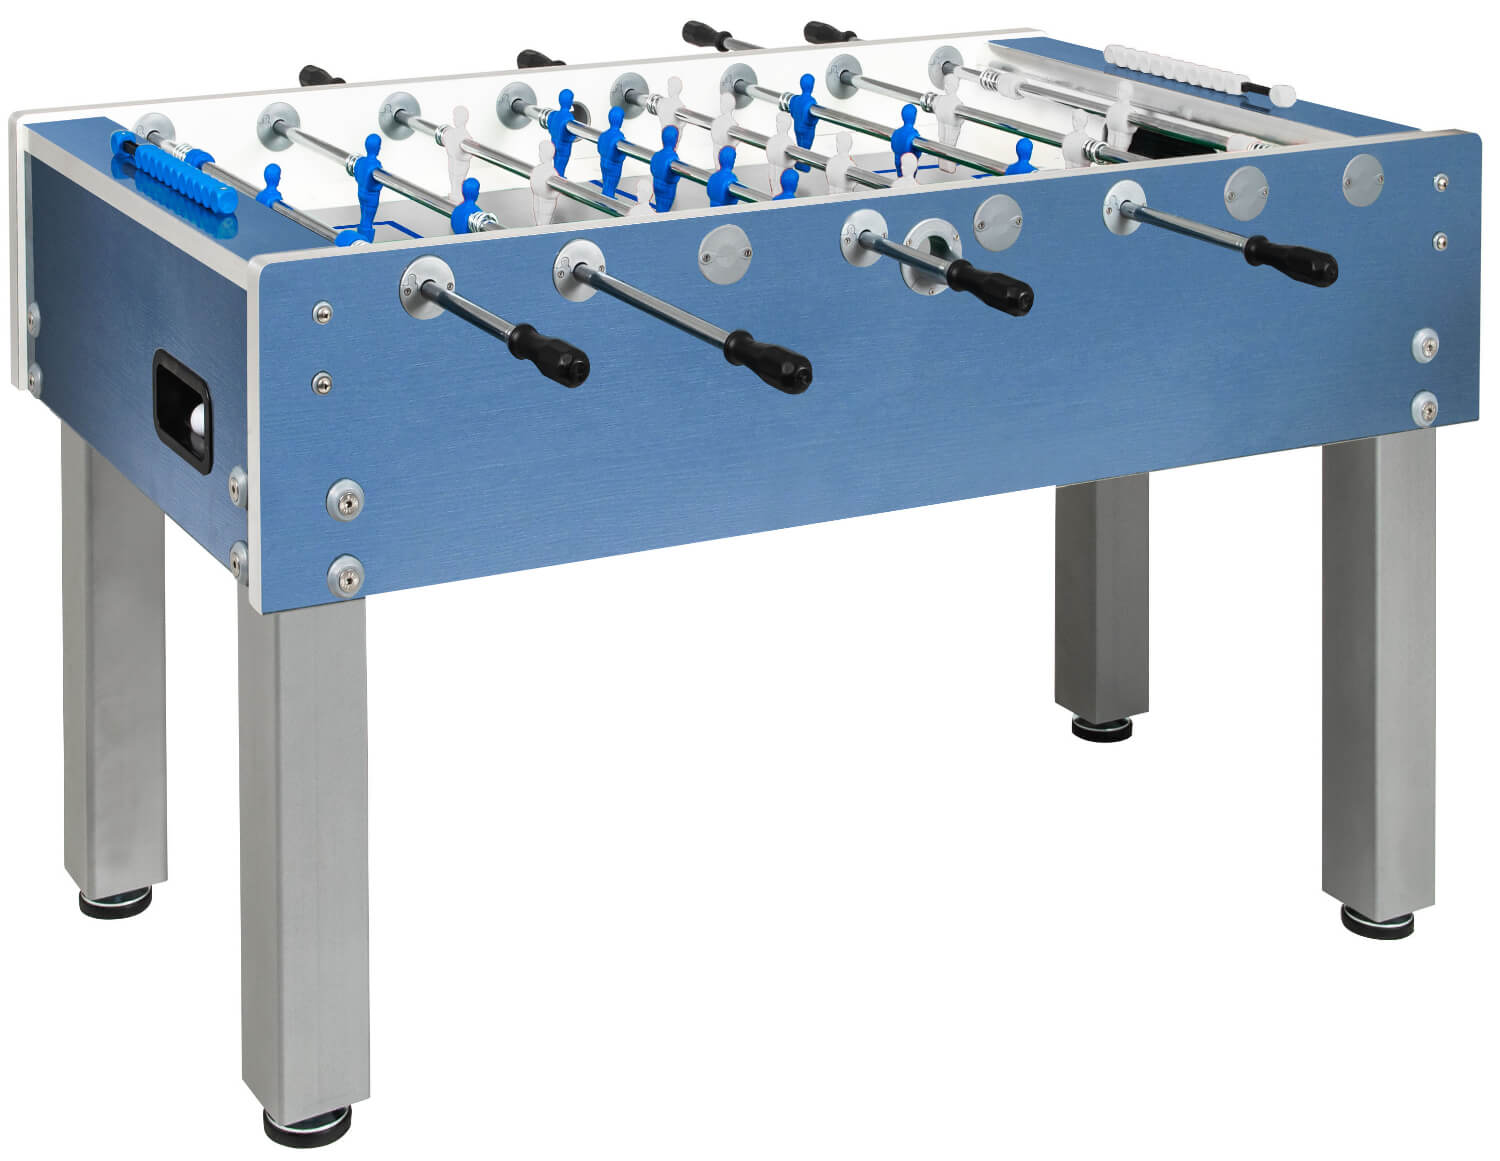 Garlando G 500WP Weather Proof Outdoor Football Table